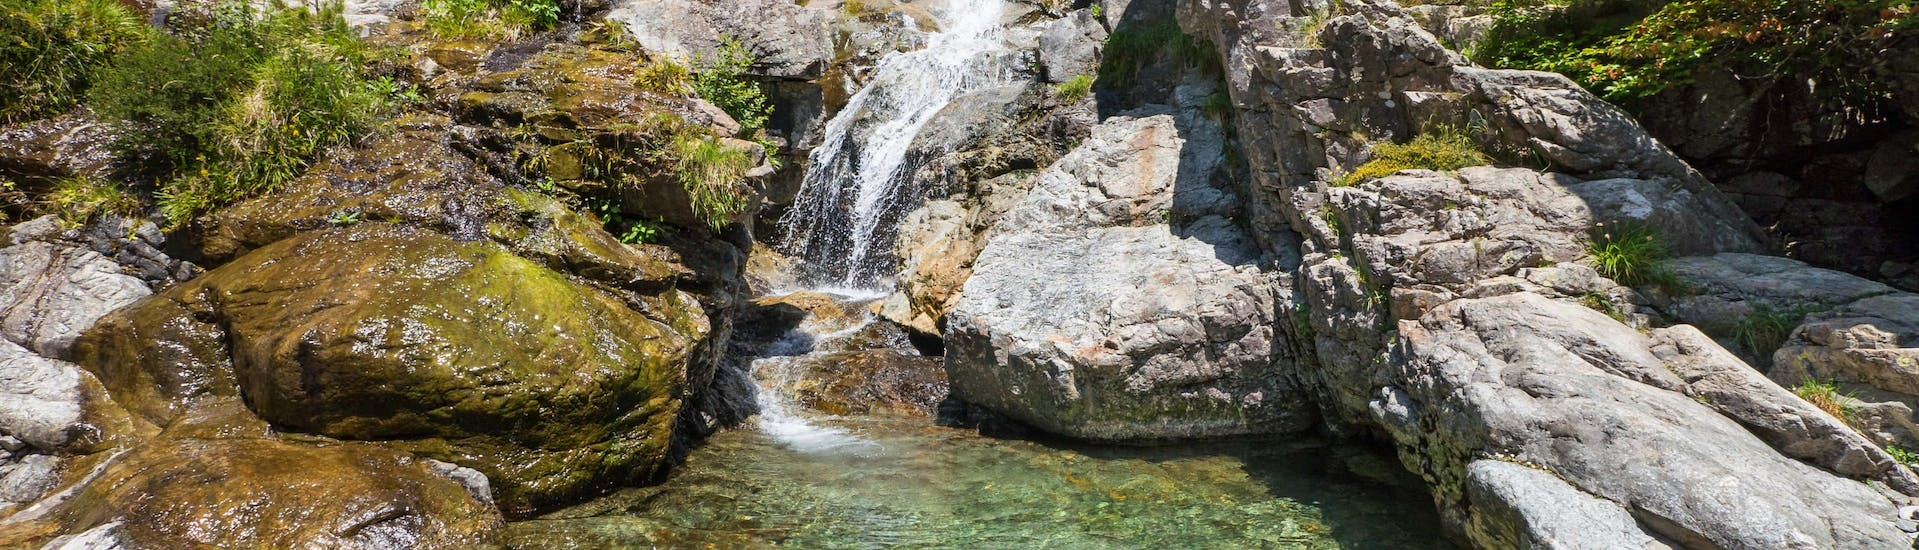 An image of the Cascade des Anglais waterfall, an impressive sight one might get to see when canyoning near Ajaccio.